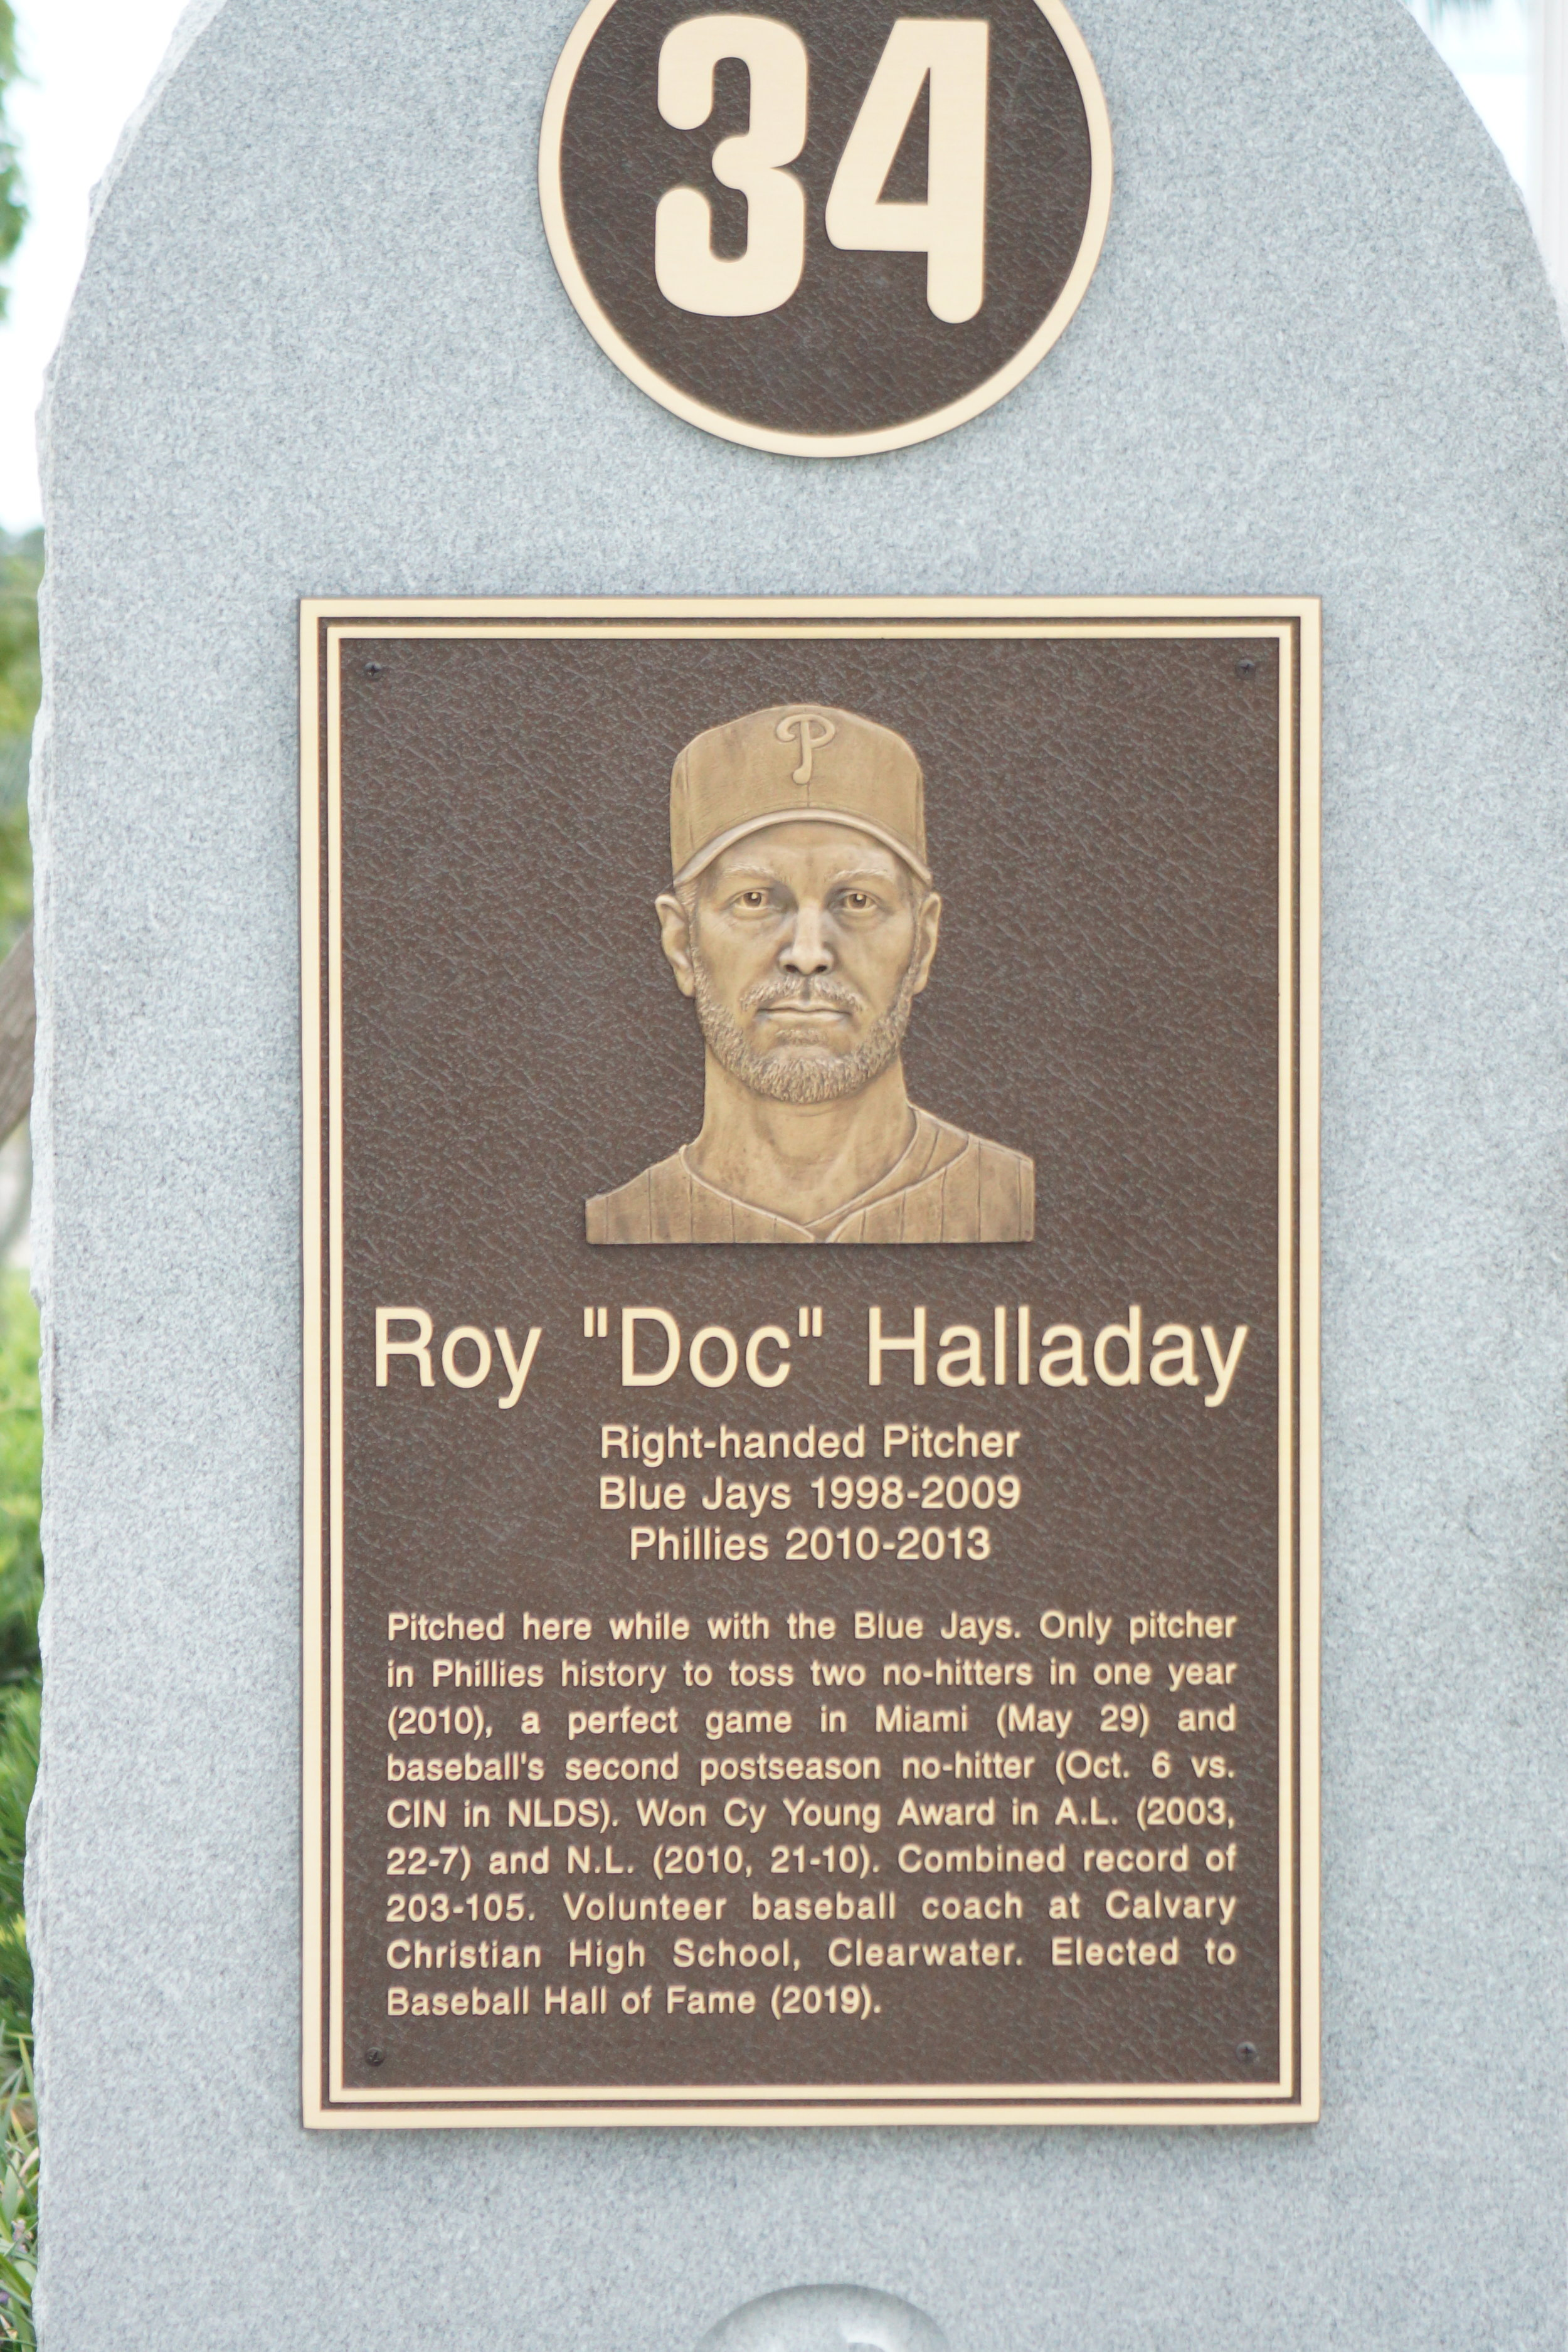 RHP Roy Halladay has a plaque at Jack Russell Stadium in Clearwater, Fla., which should be a must stop for Blue Jays fans making the trip to Florida next spring. Photos: Eddie Michels, Rick Vaughn.